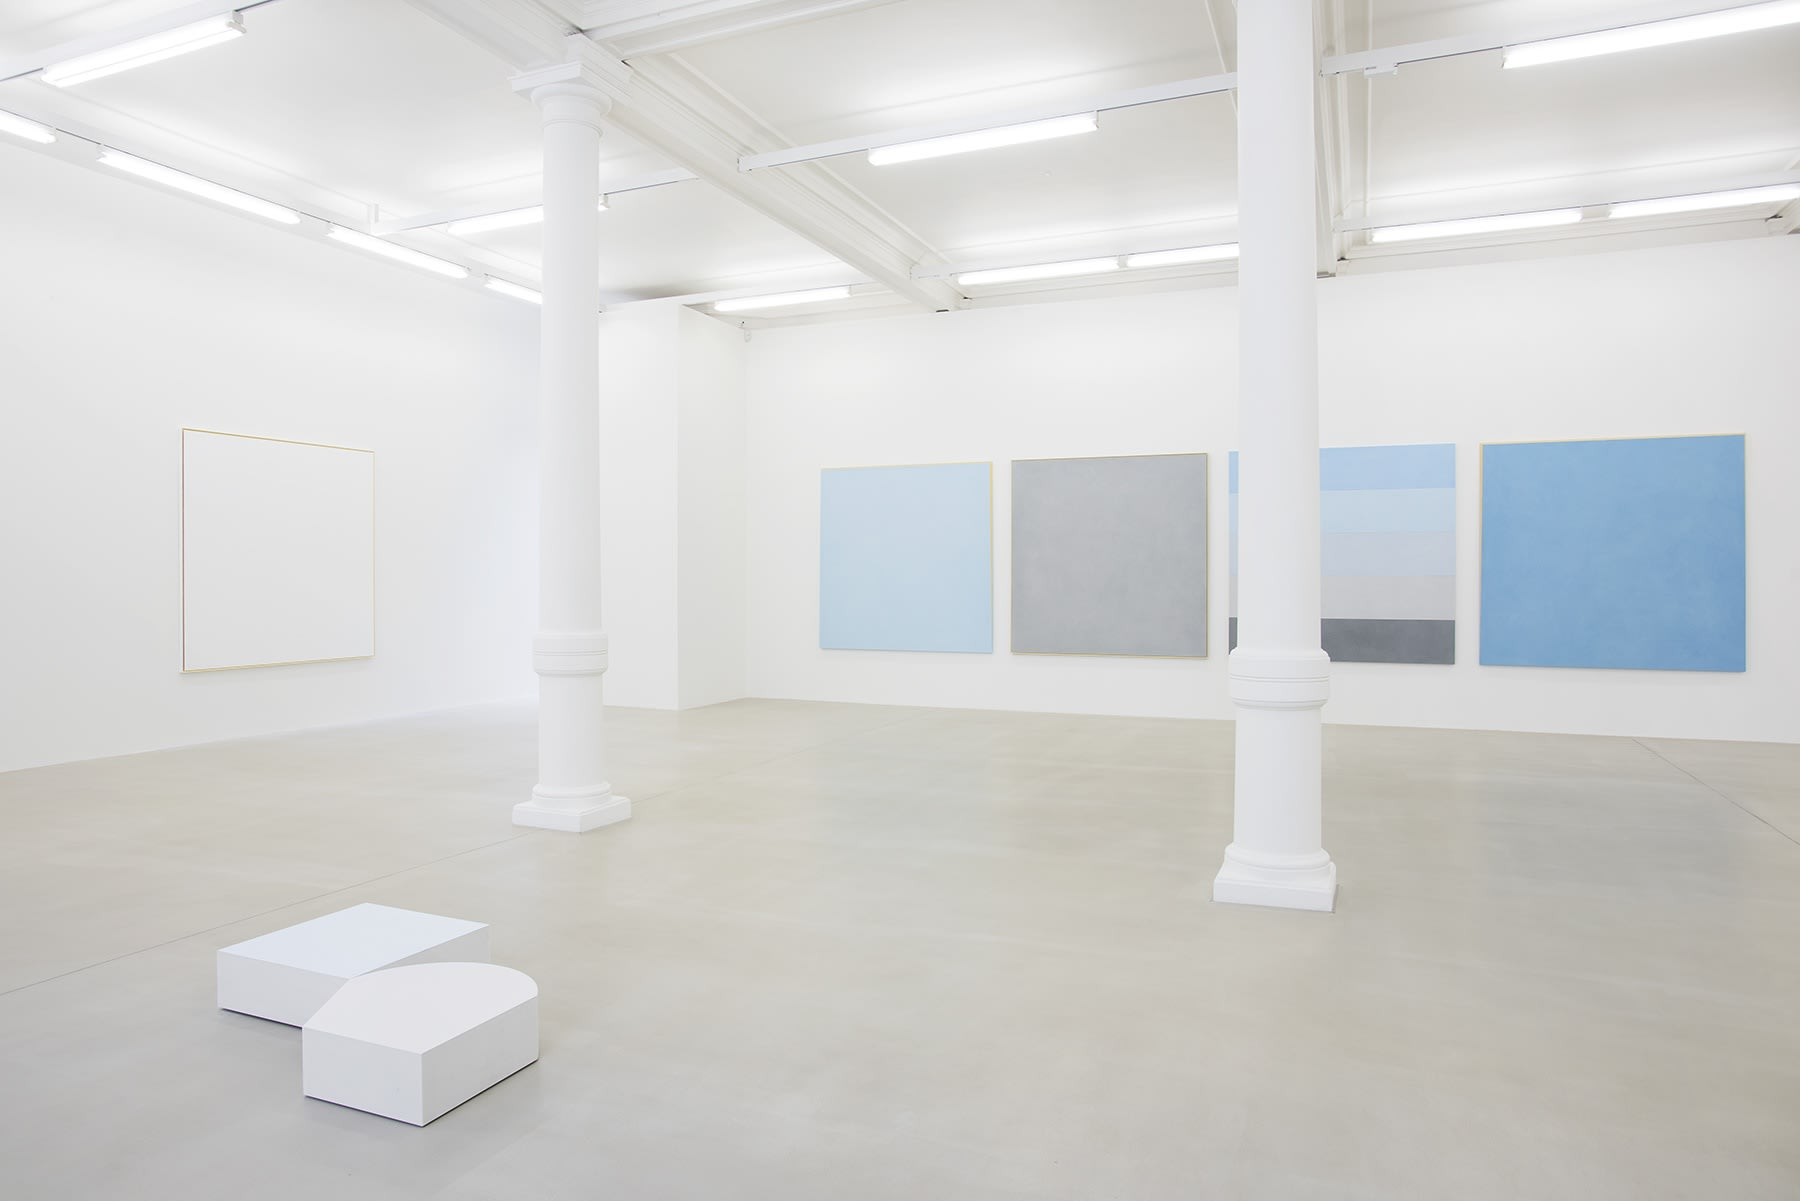 Various paintings of light shades (blue, grey, white) line the walls of an all white space, with short white sculptures on the floor.